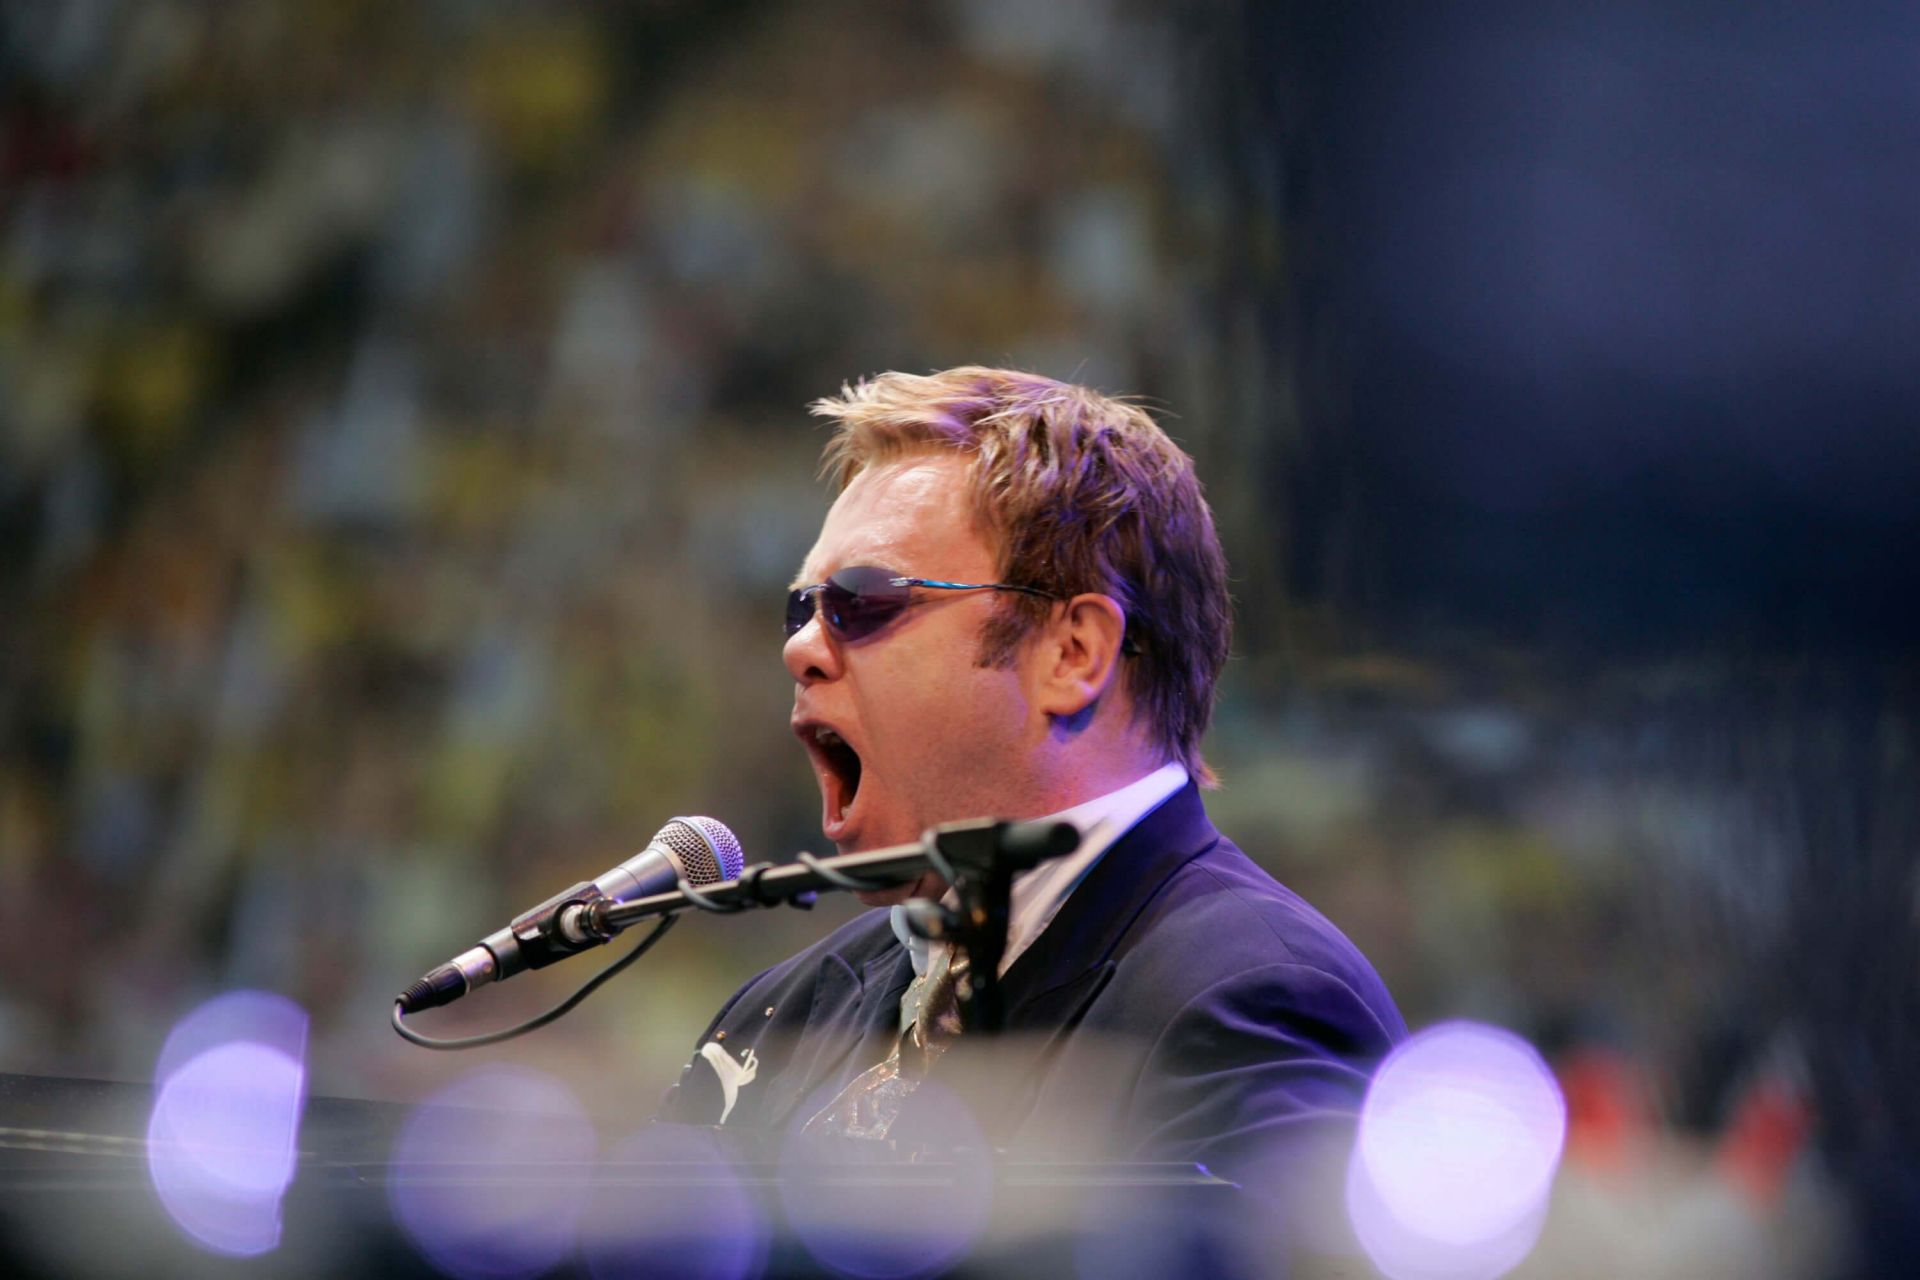 June 18th 2005 - Elton on stage at Watford Football Club.